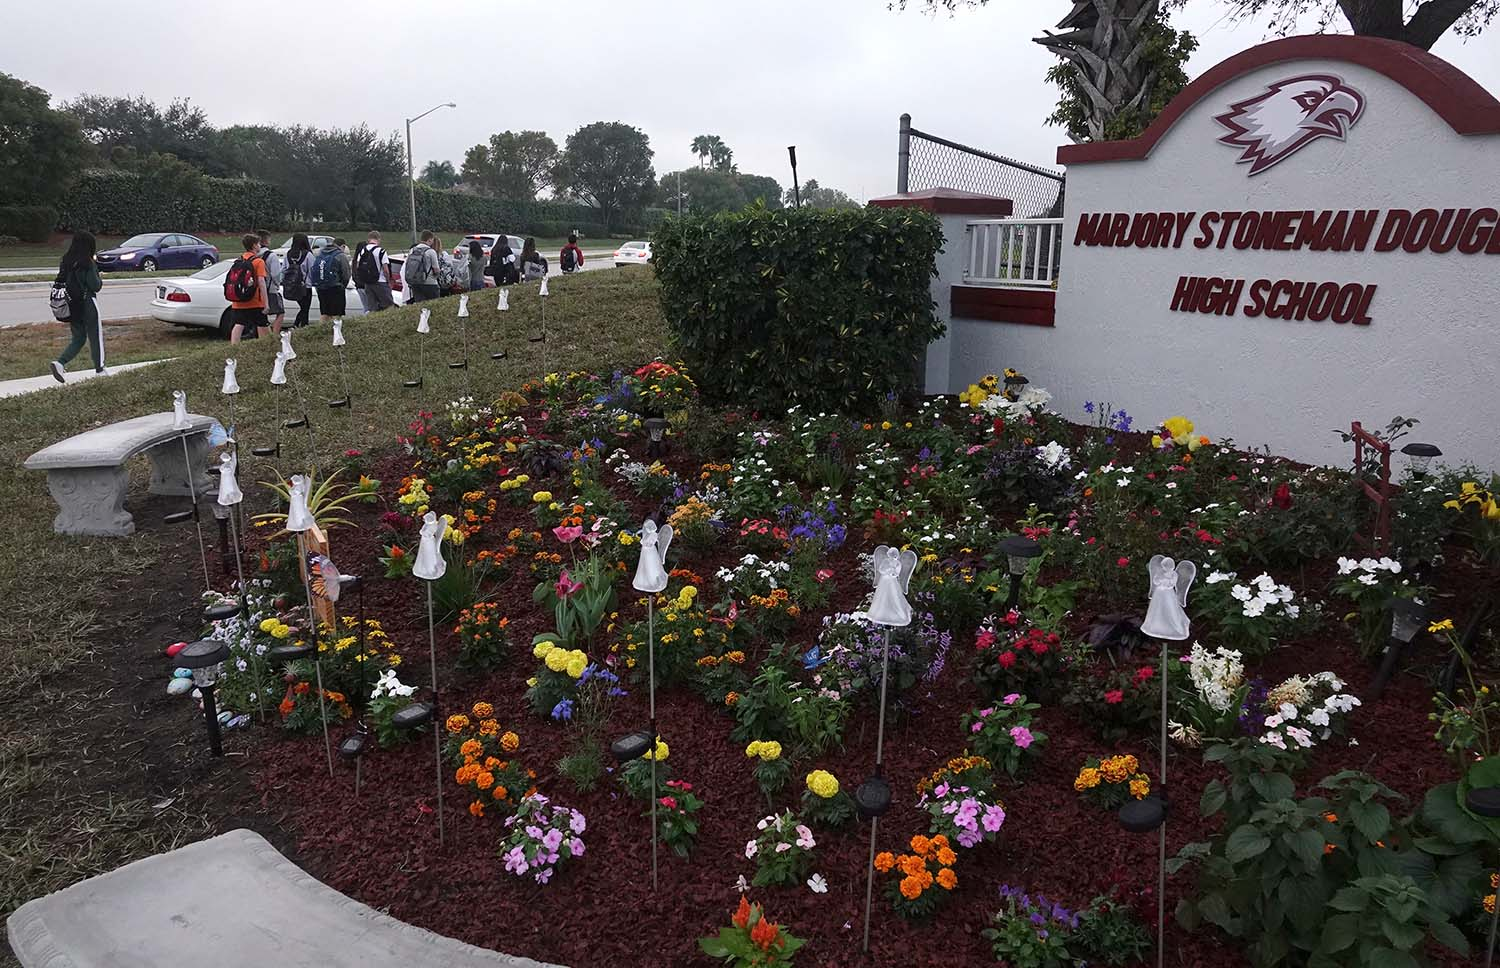 Students walk past the new memorial garden outside of Marjory Stoneman Douglas High School in Parkland, Fla., Monday, Jan. 14, 2019.  (Joe Cavaretta/South Florida Sun Sentinel/TNS)